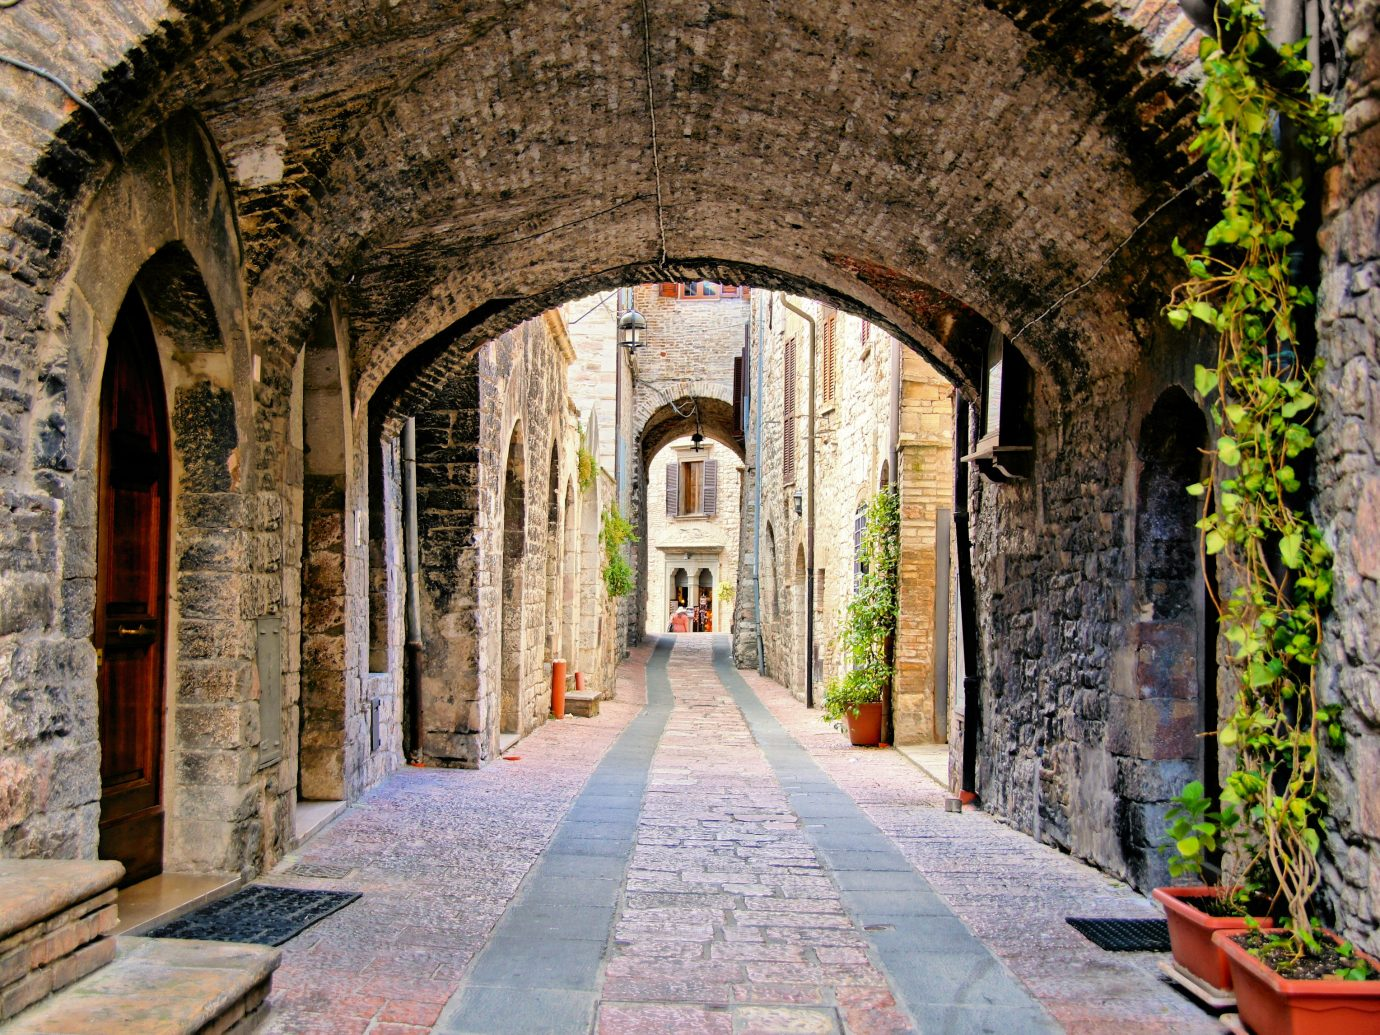 Trip Ideas building ground outdoor arch stone Town Architecture arcade ancient history tourism monastery estate Courtyard alley place of worship aisle middle ages chapel abbey temple walkway colonnade